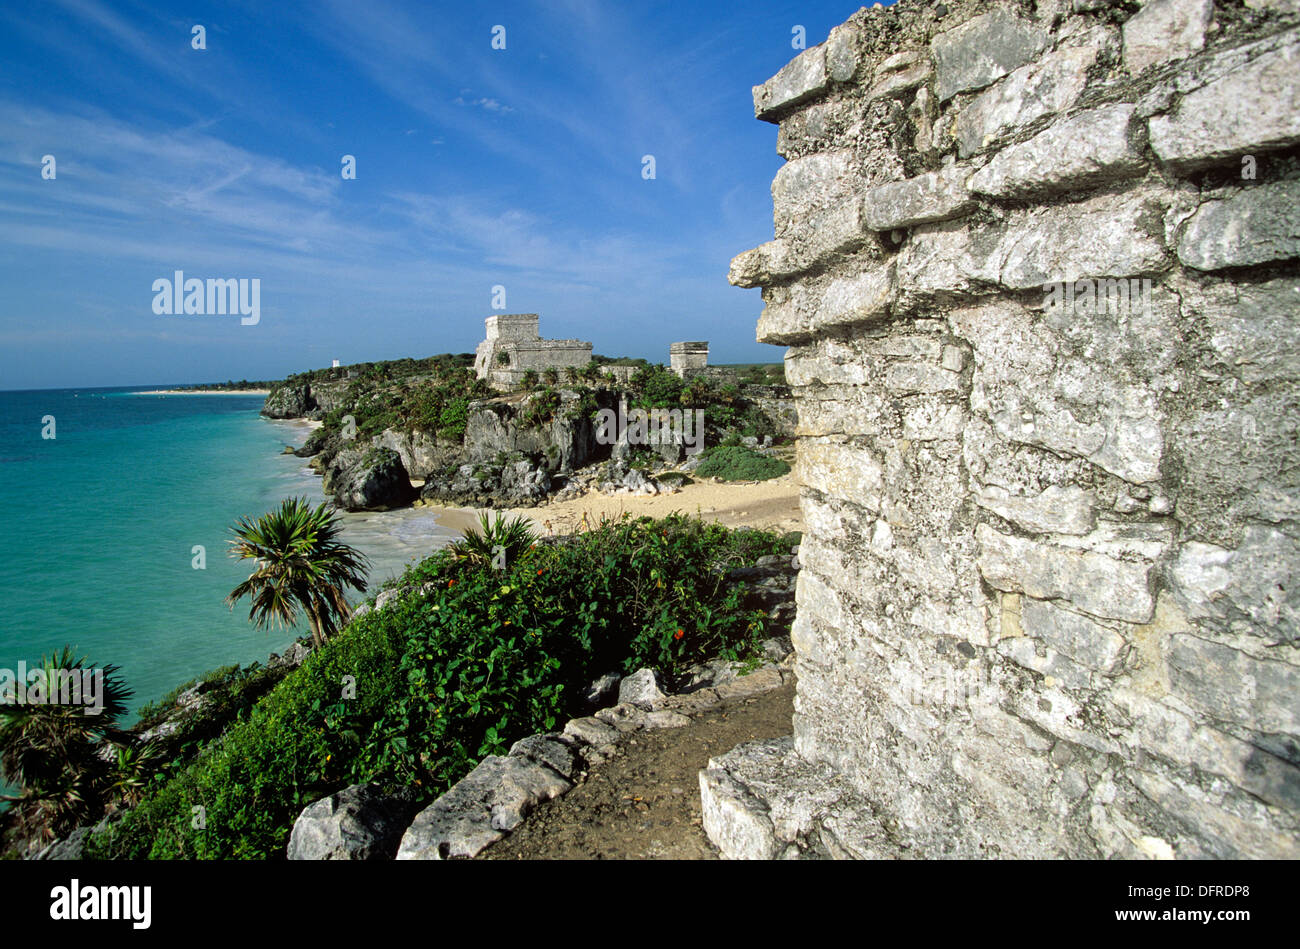 Tulum is a walled Post-Classic Mayan site, abandoned 450 years ago, Quintana Roo, Mexico. - Stock Image